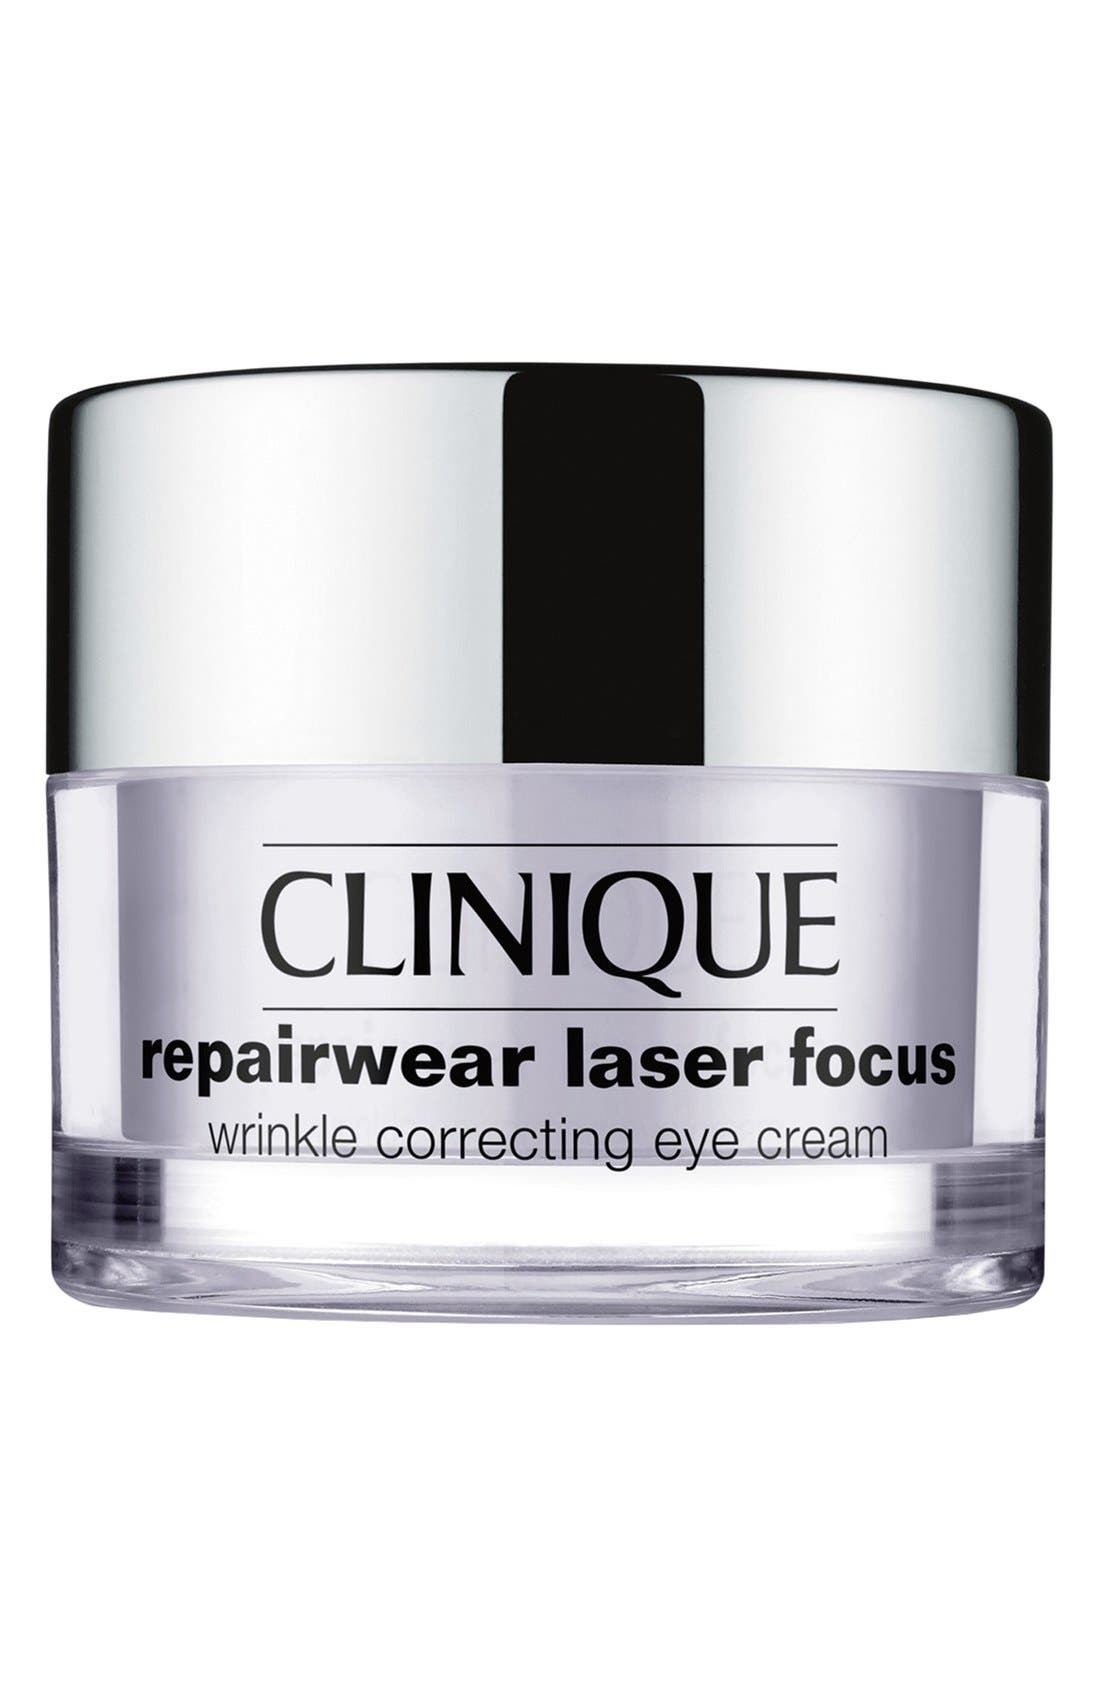 Repairwear Laser Focus Wrinkle Correcting Eye Cream,                             Main thumbnail 1, color,                             NO COLOR